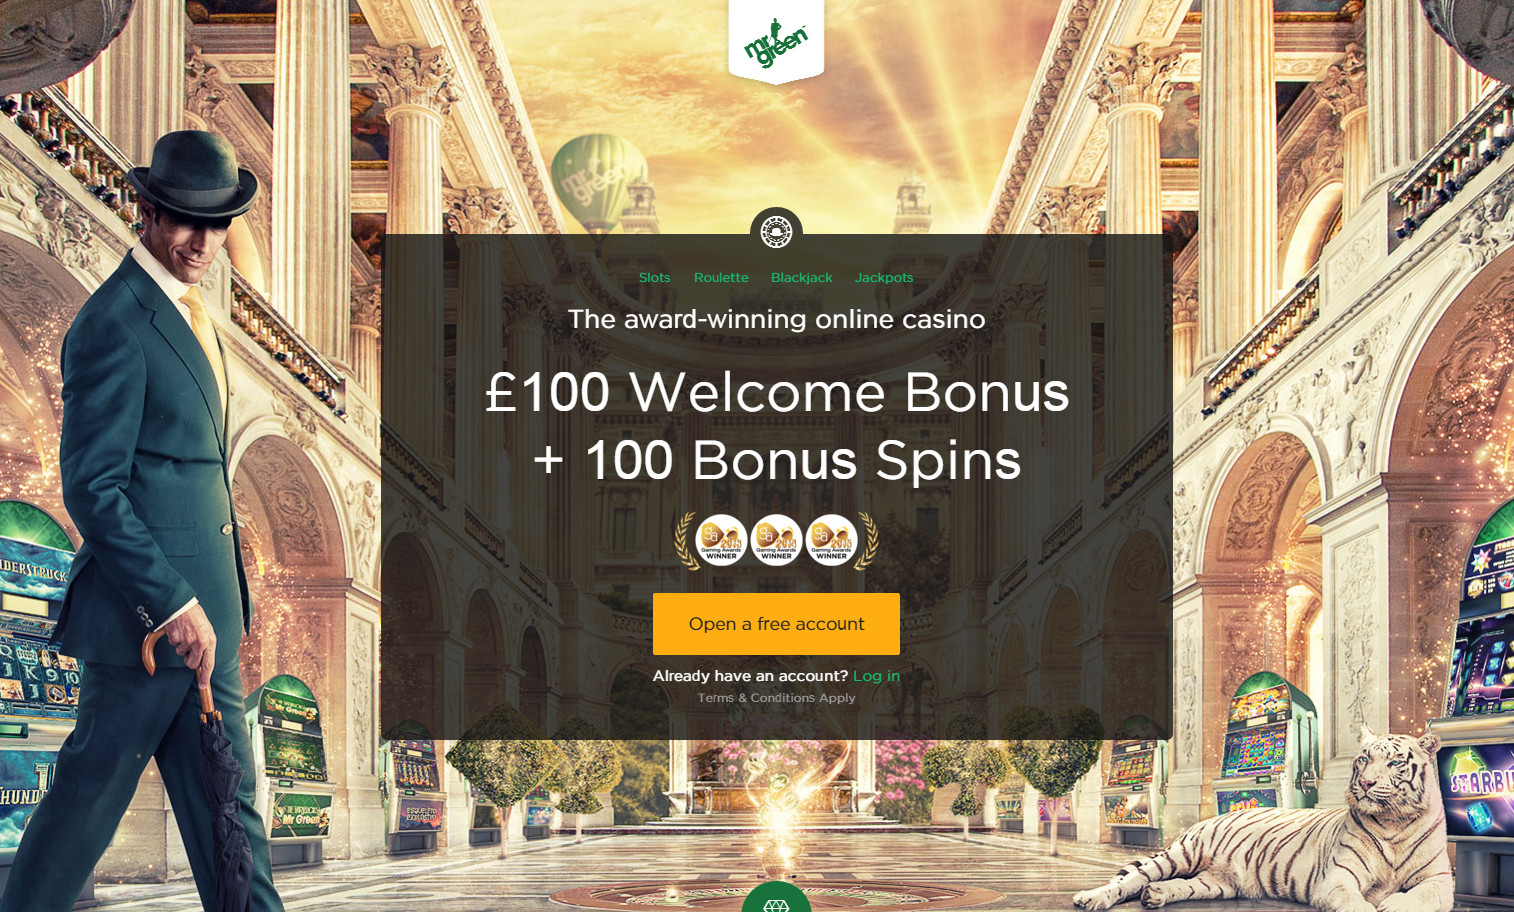 Bonuses at Mr Green Casino